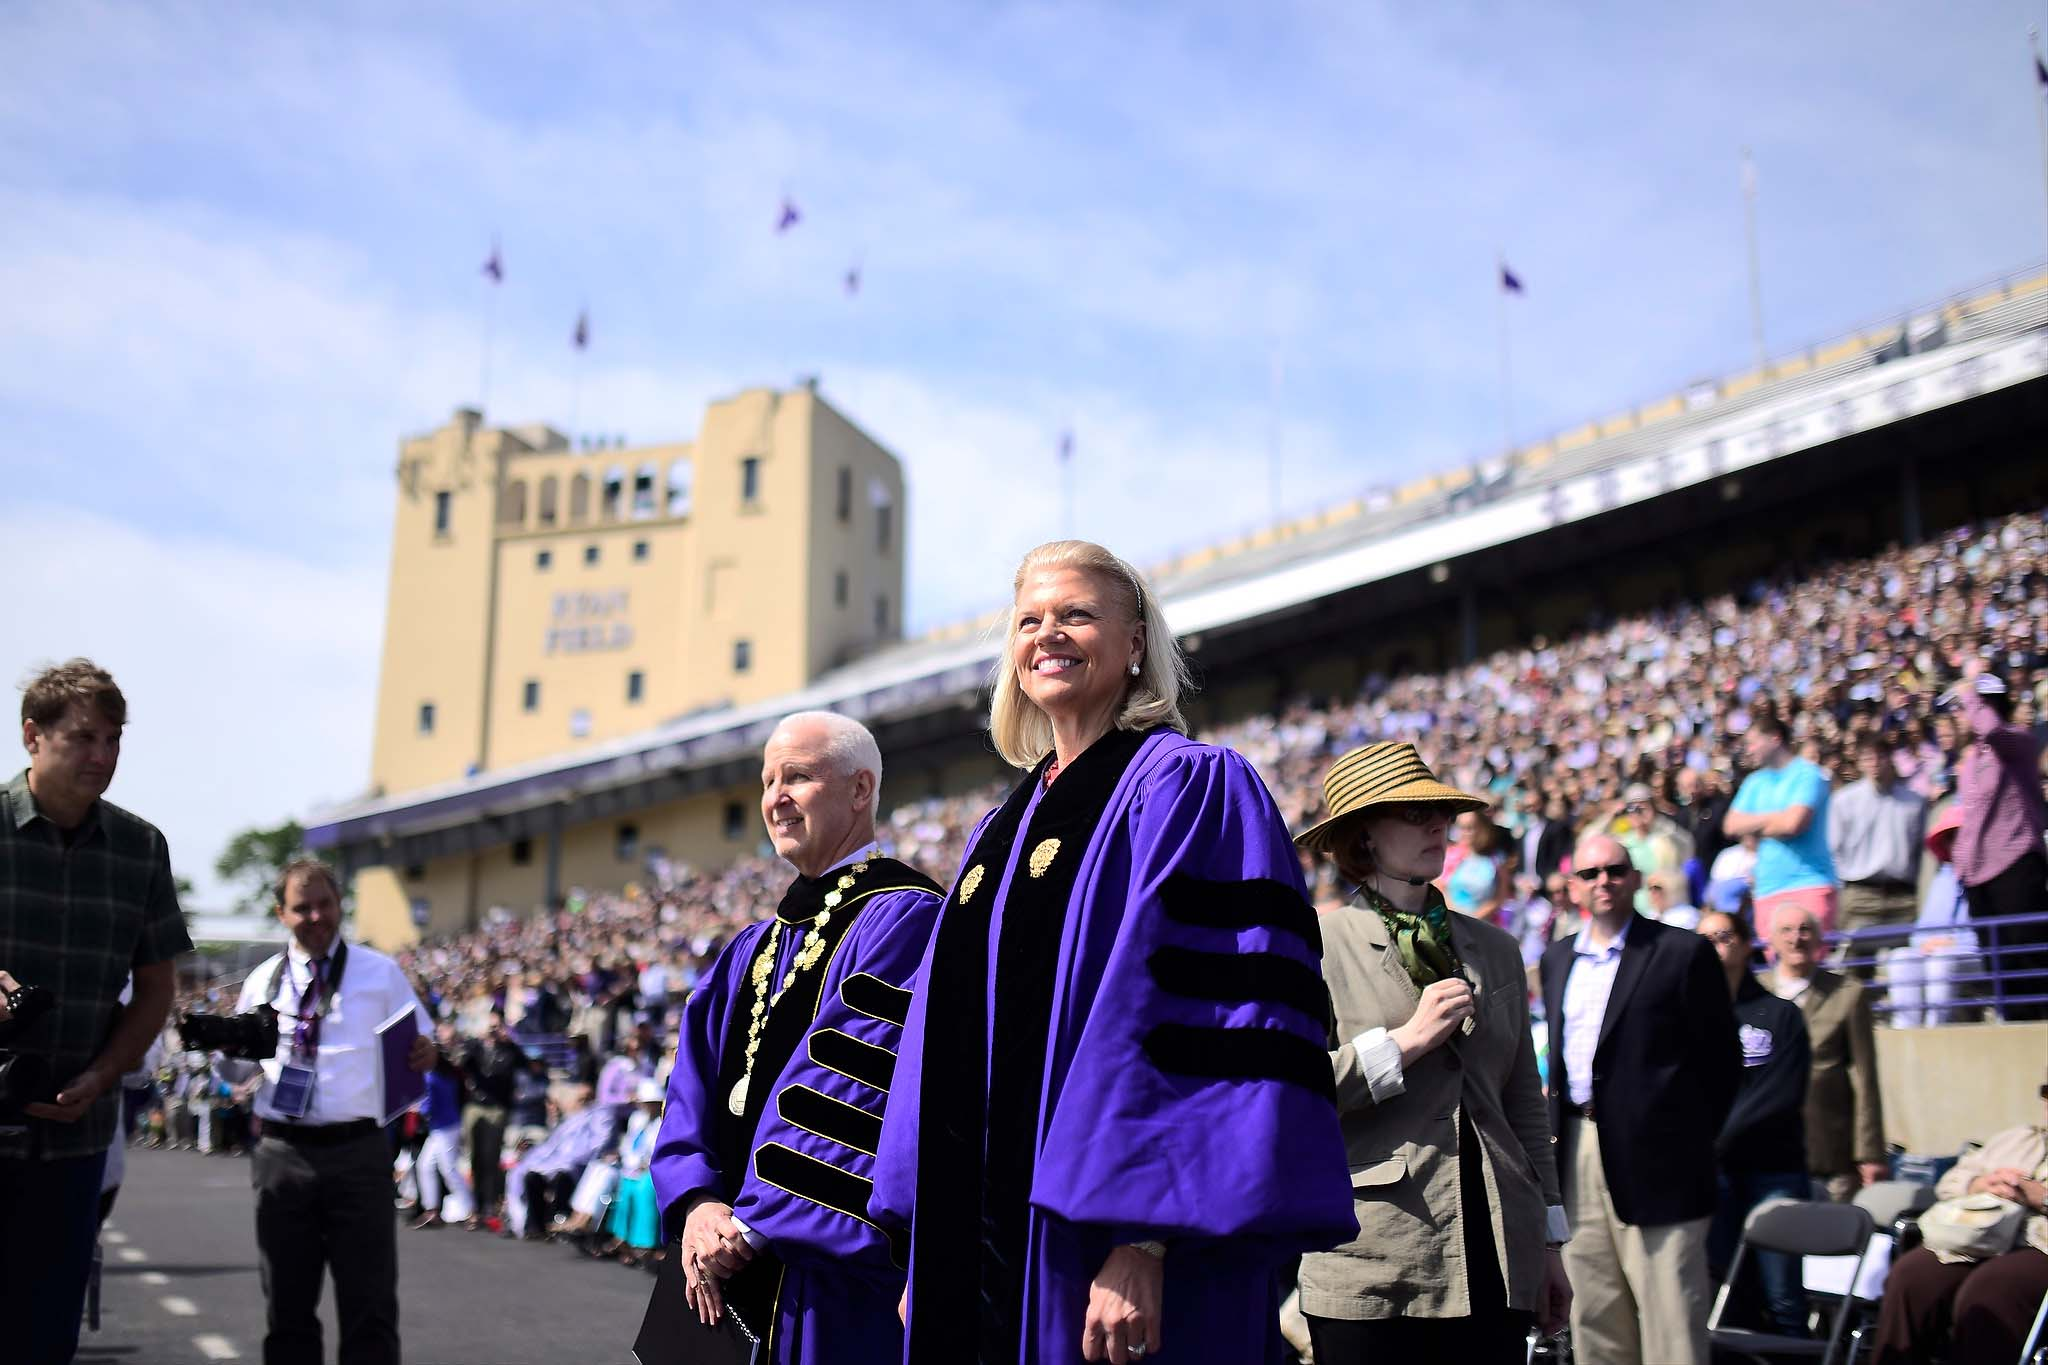 Virginia Rometty, IBM chairwoman and CEO, enters Ryan Field for Friday's commencement ceremony alongside University President Morton Schapiro. Rometty gave this year's commencement address to an audience of 15,000 graduates, faculty and guests.